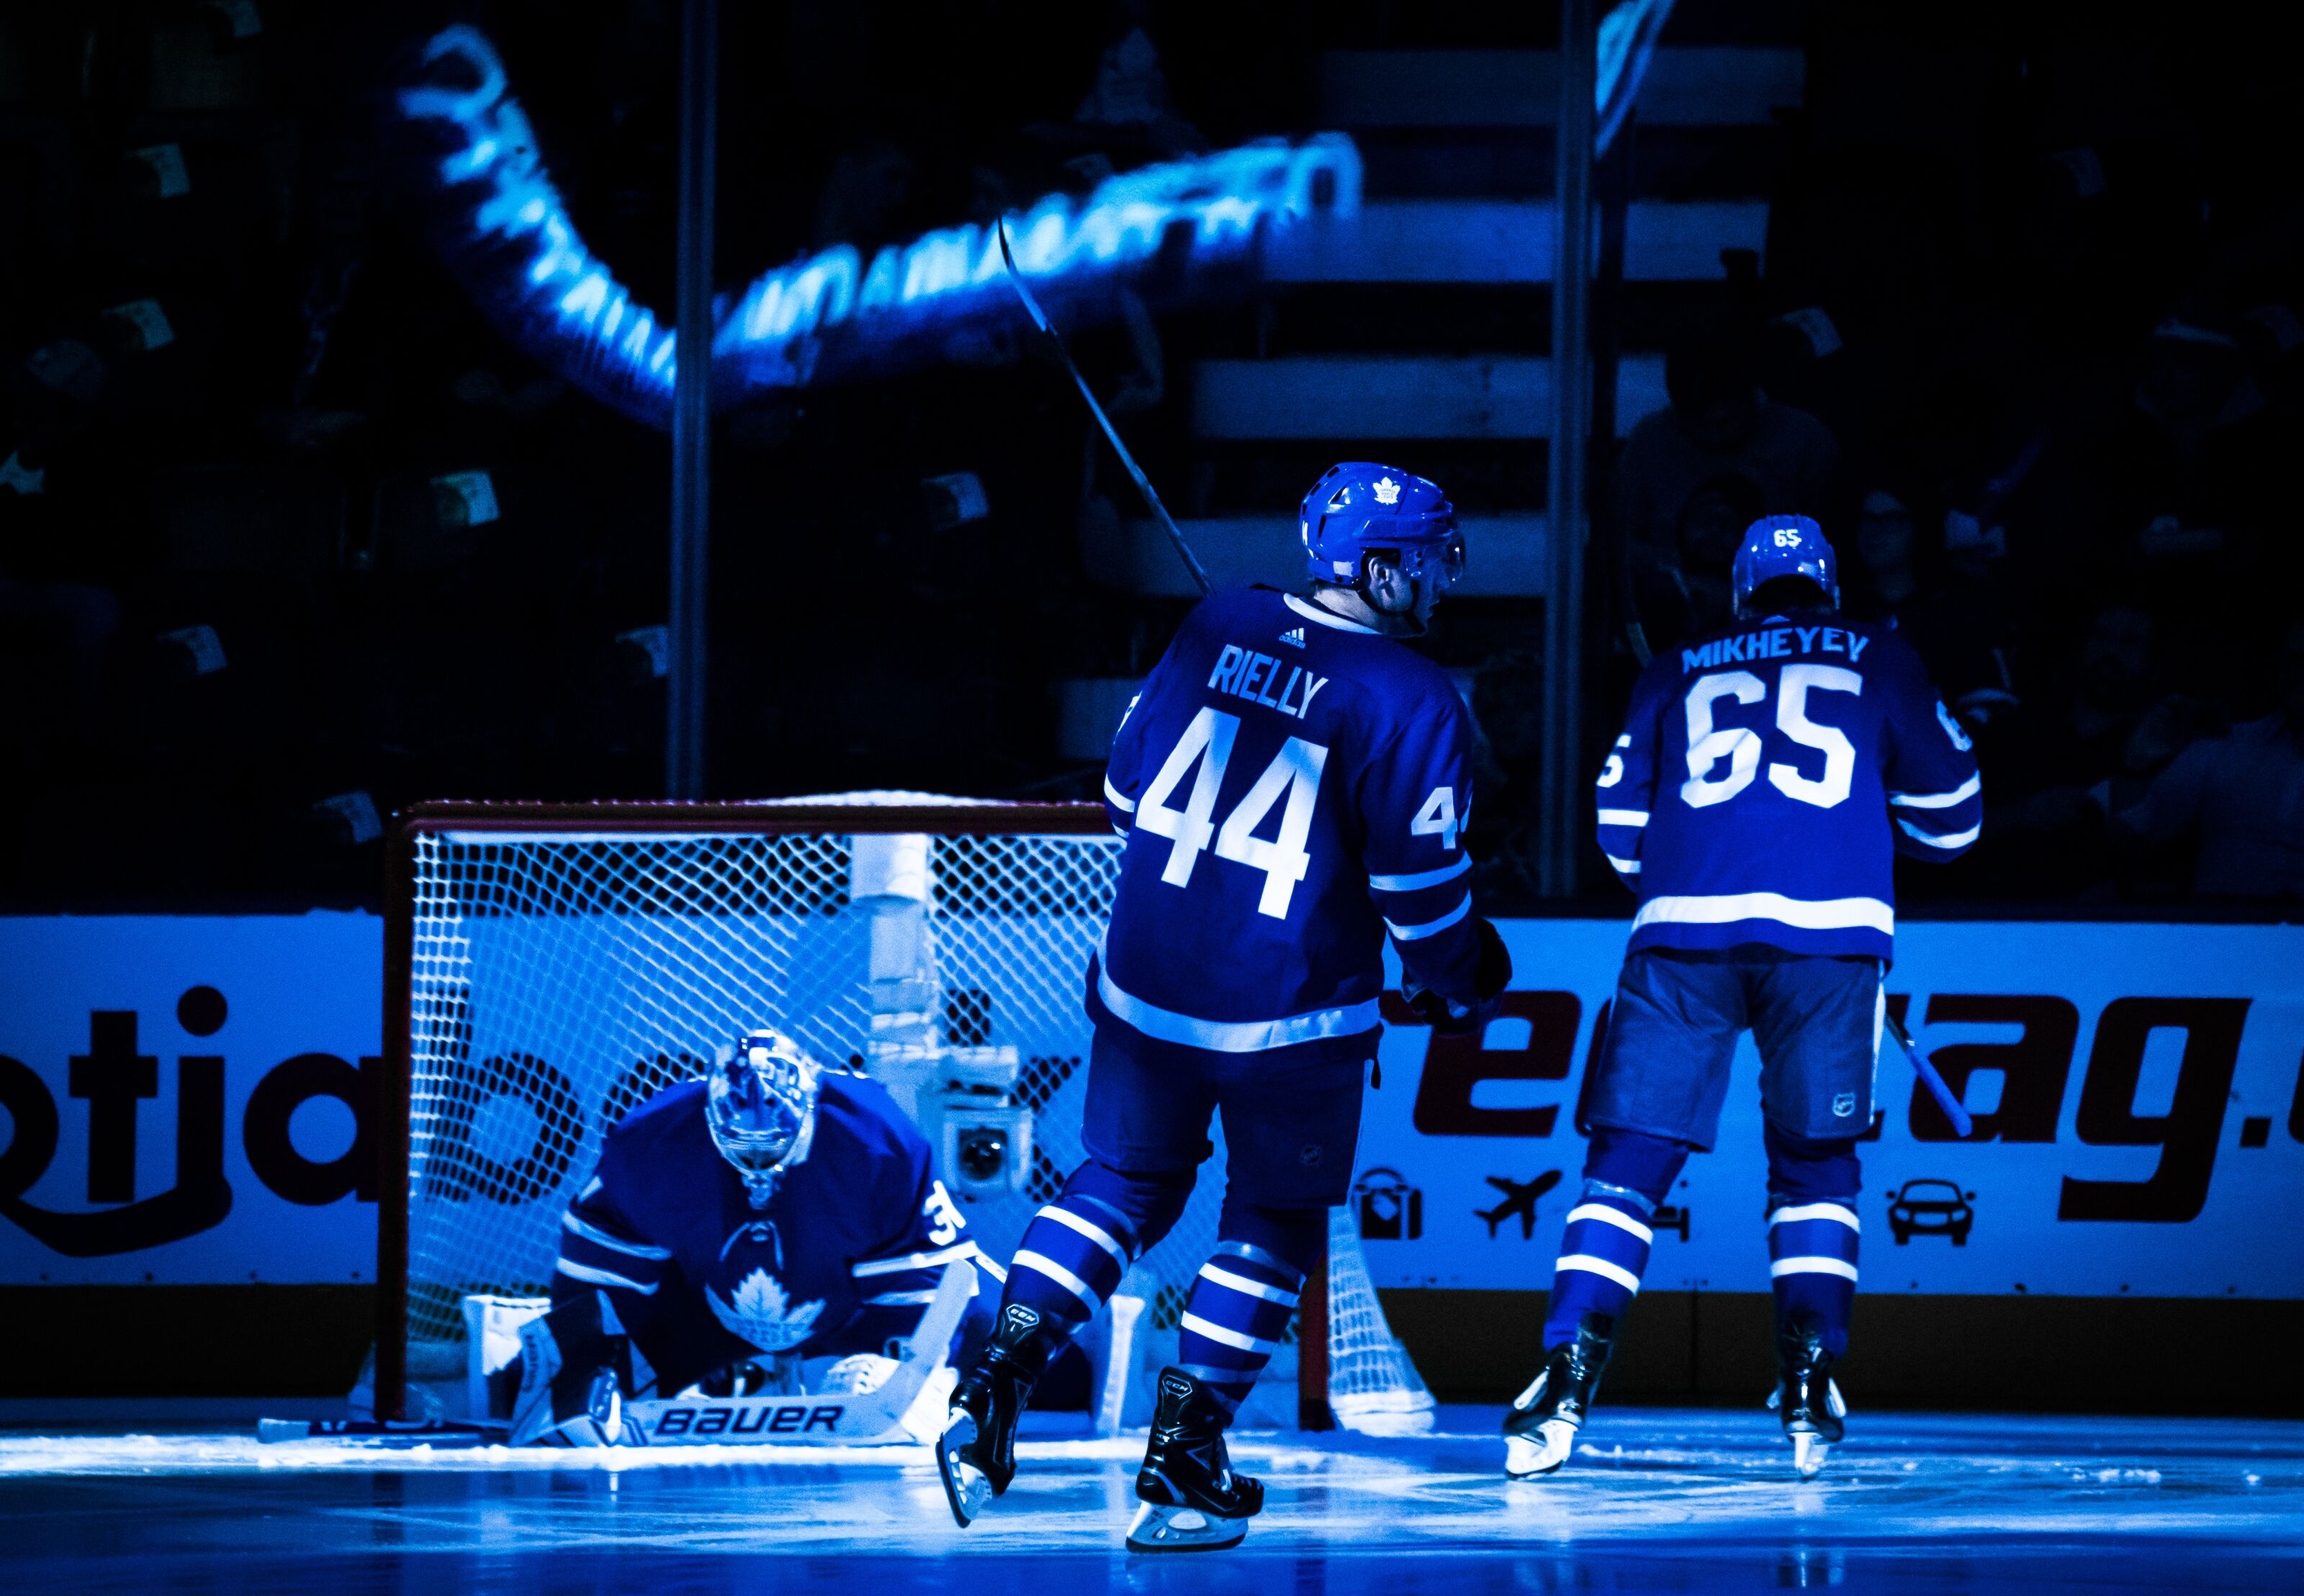 Toronto Maple Leafs: The Most Disappointing Player This Season - Editor In Leaf